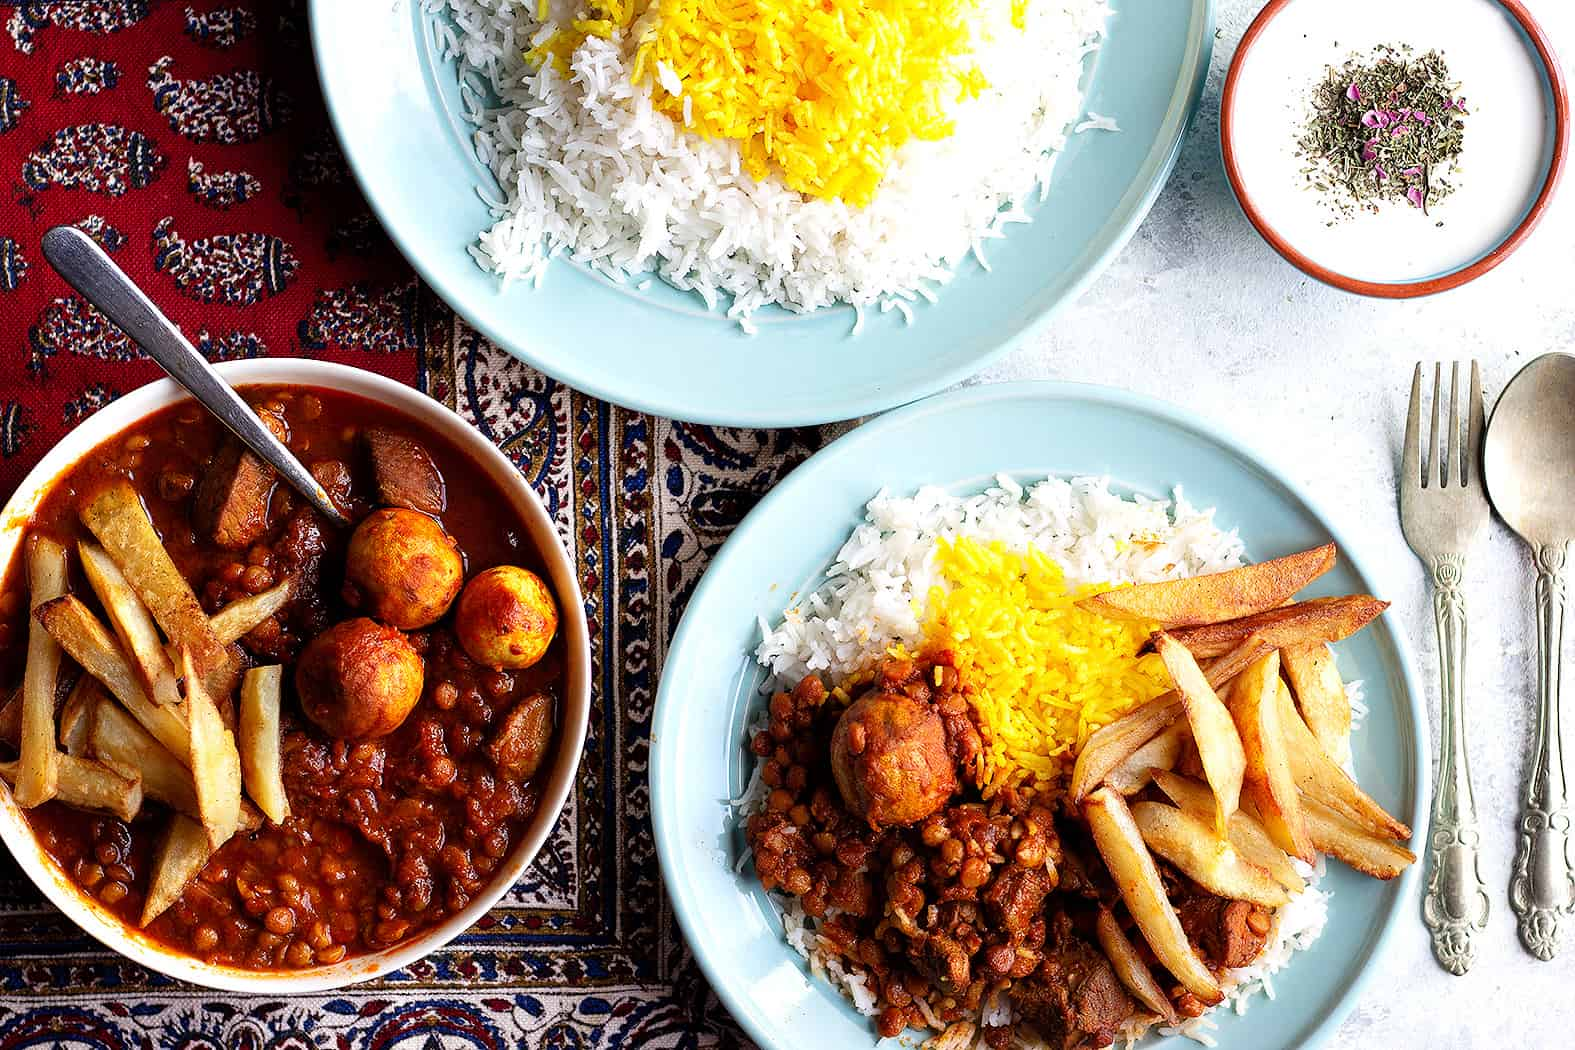 twp plates of rice serve with Persian gheimeh stew.